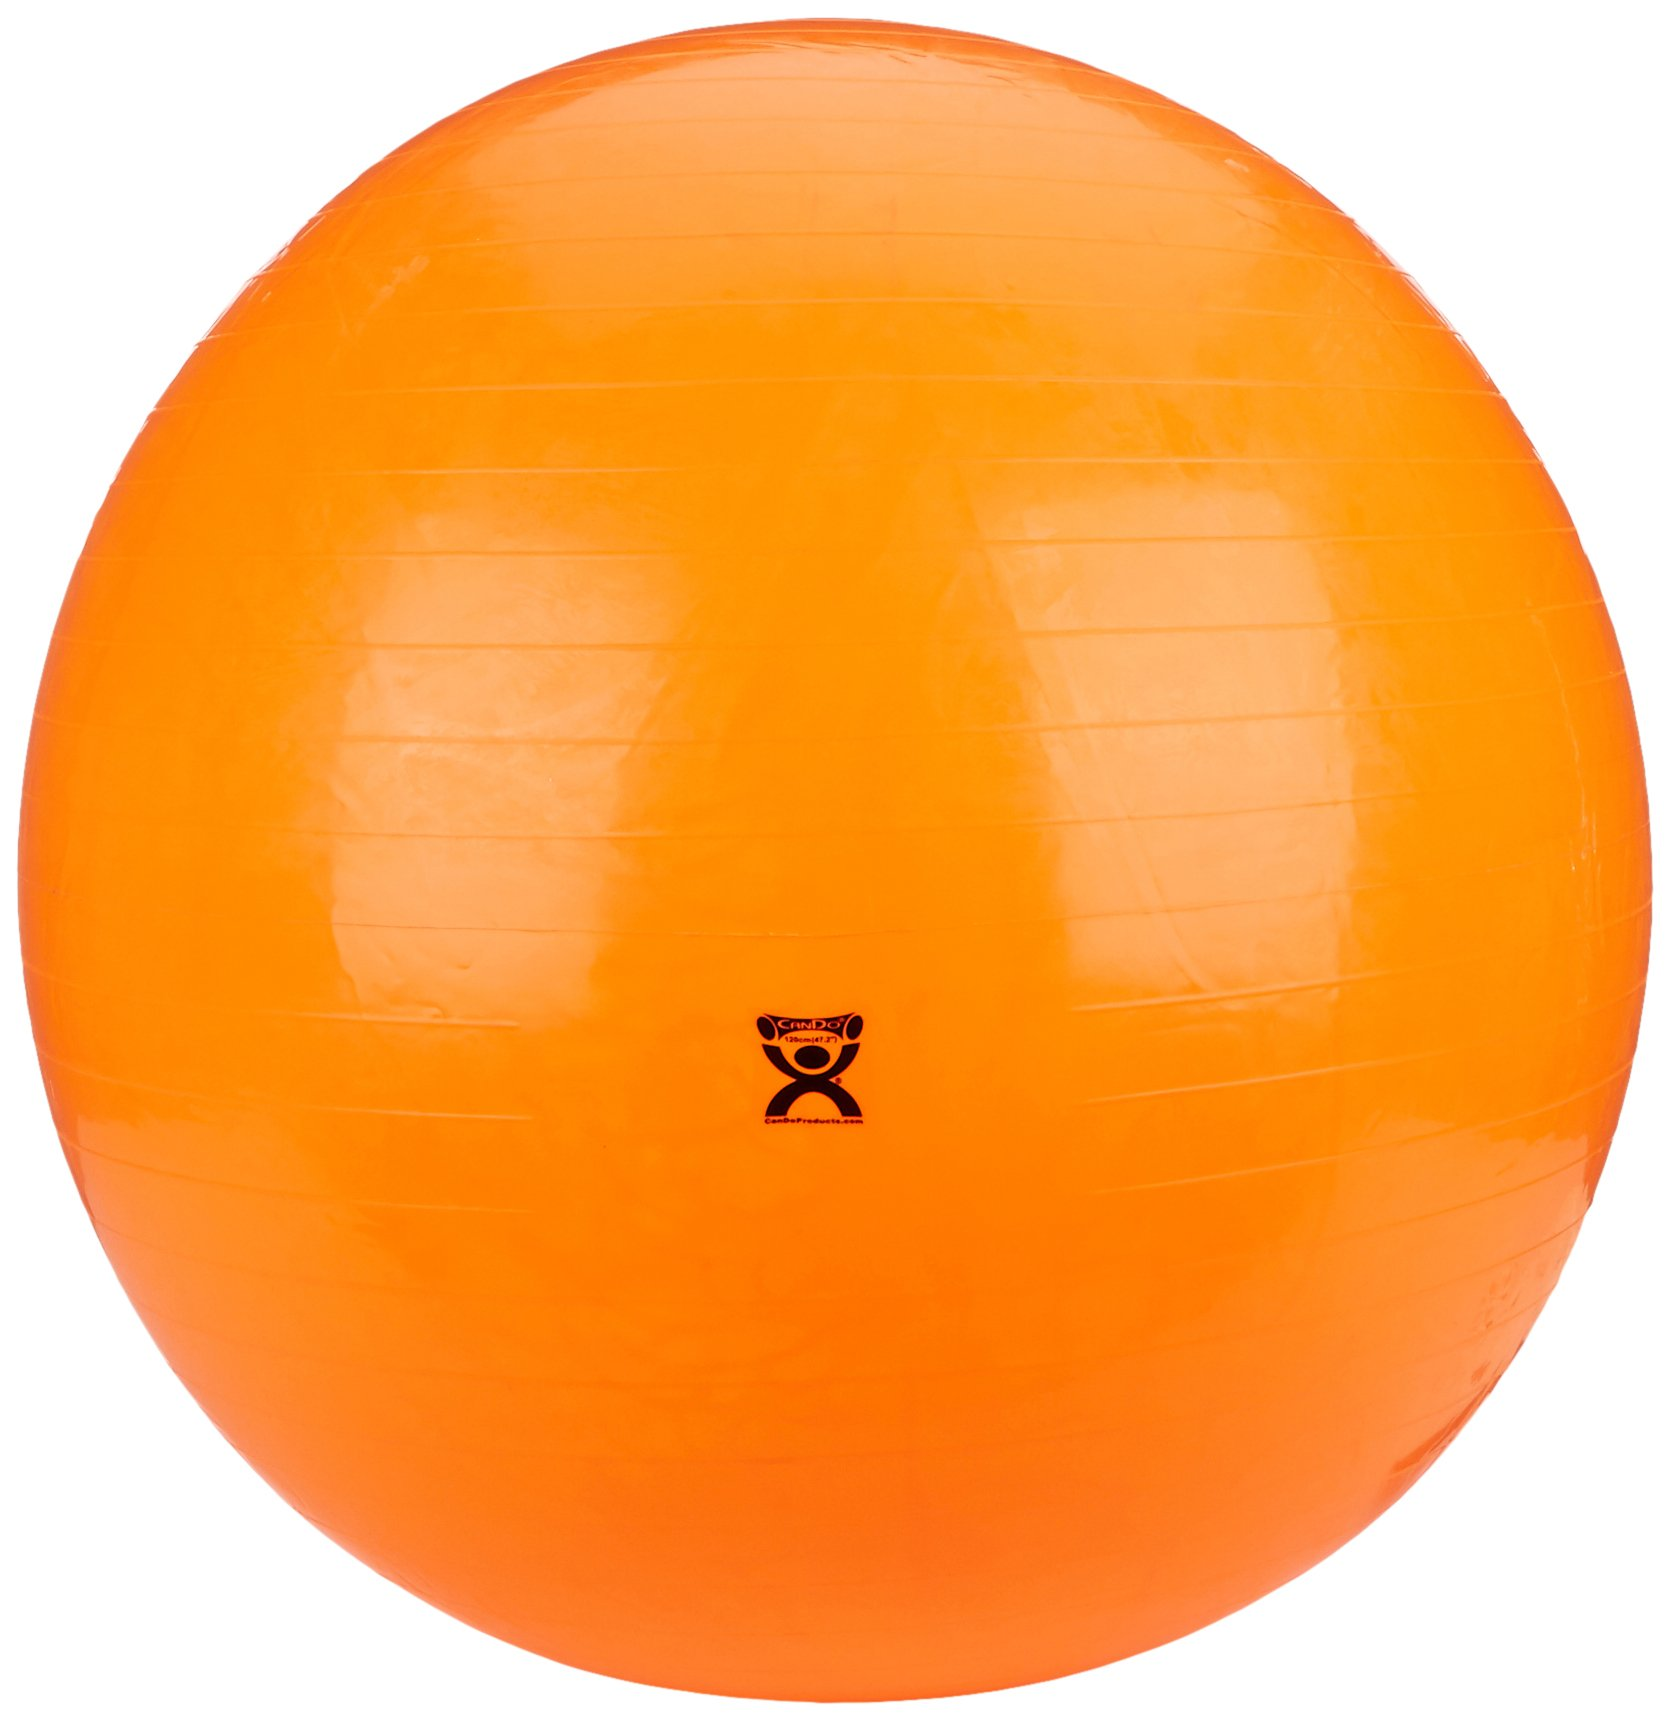 Rolyan Energizing Exercising Balls, Orange 47 1/4'', Vinyl Therapy Ball for Physical and Occupational Therapy, Fitness Ball for At-Home Work Outs, Yoga, Balance, Pilates, and Core Training Activities